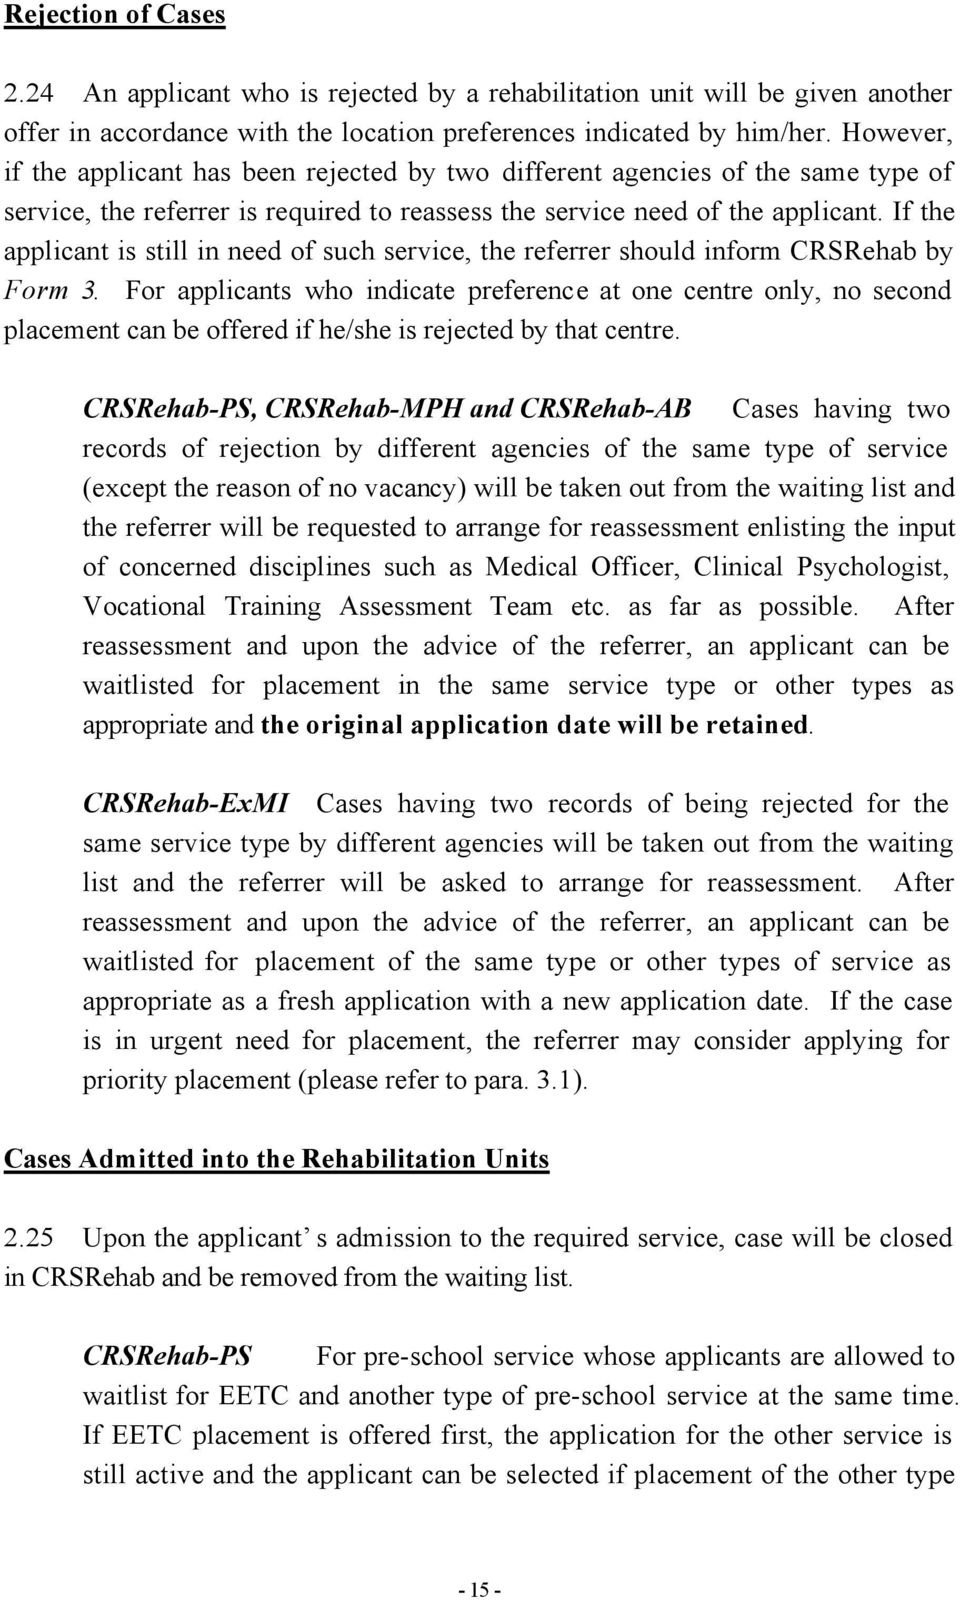 If the applicant is still in need of such service, the referrer should inform CRSRehab by Form 3.